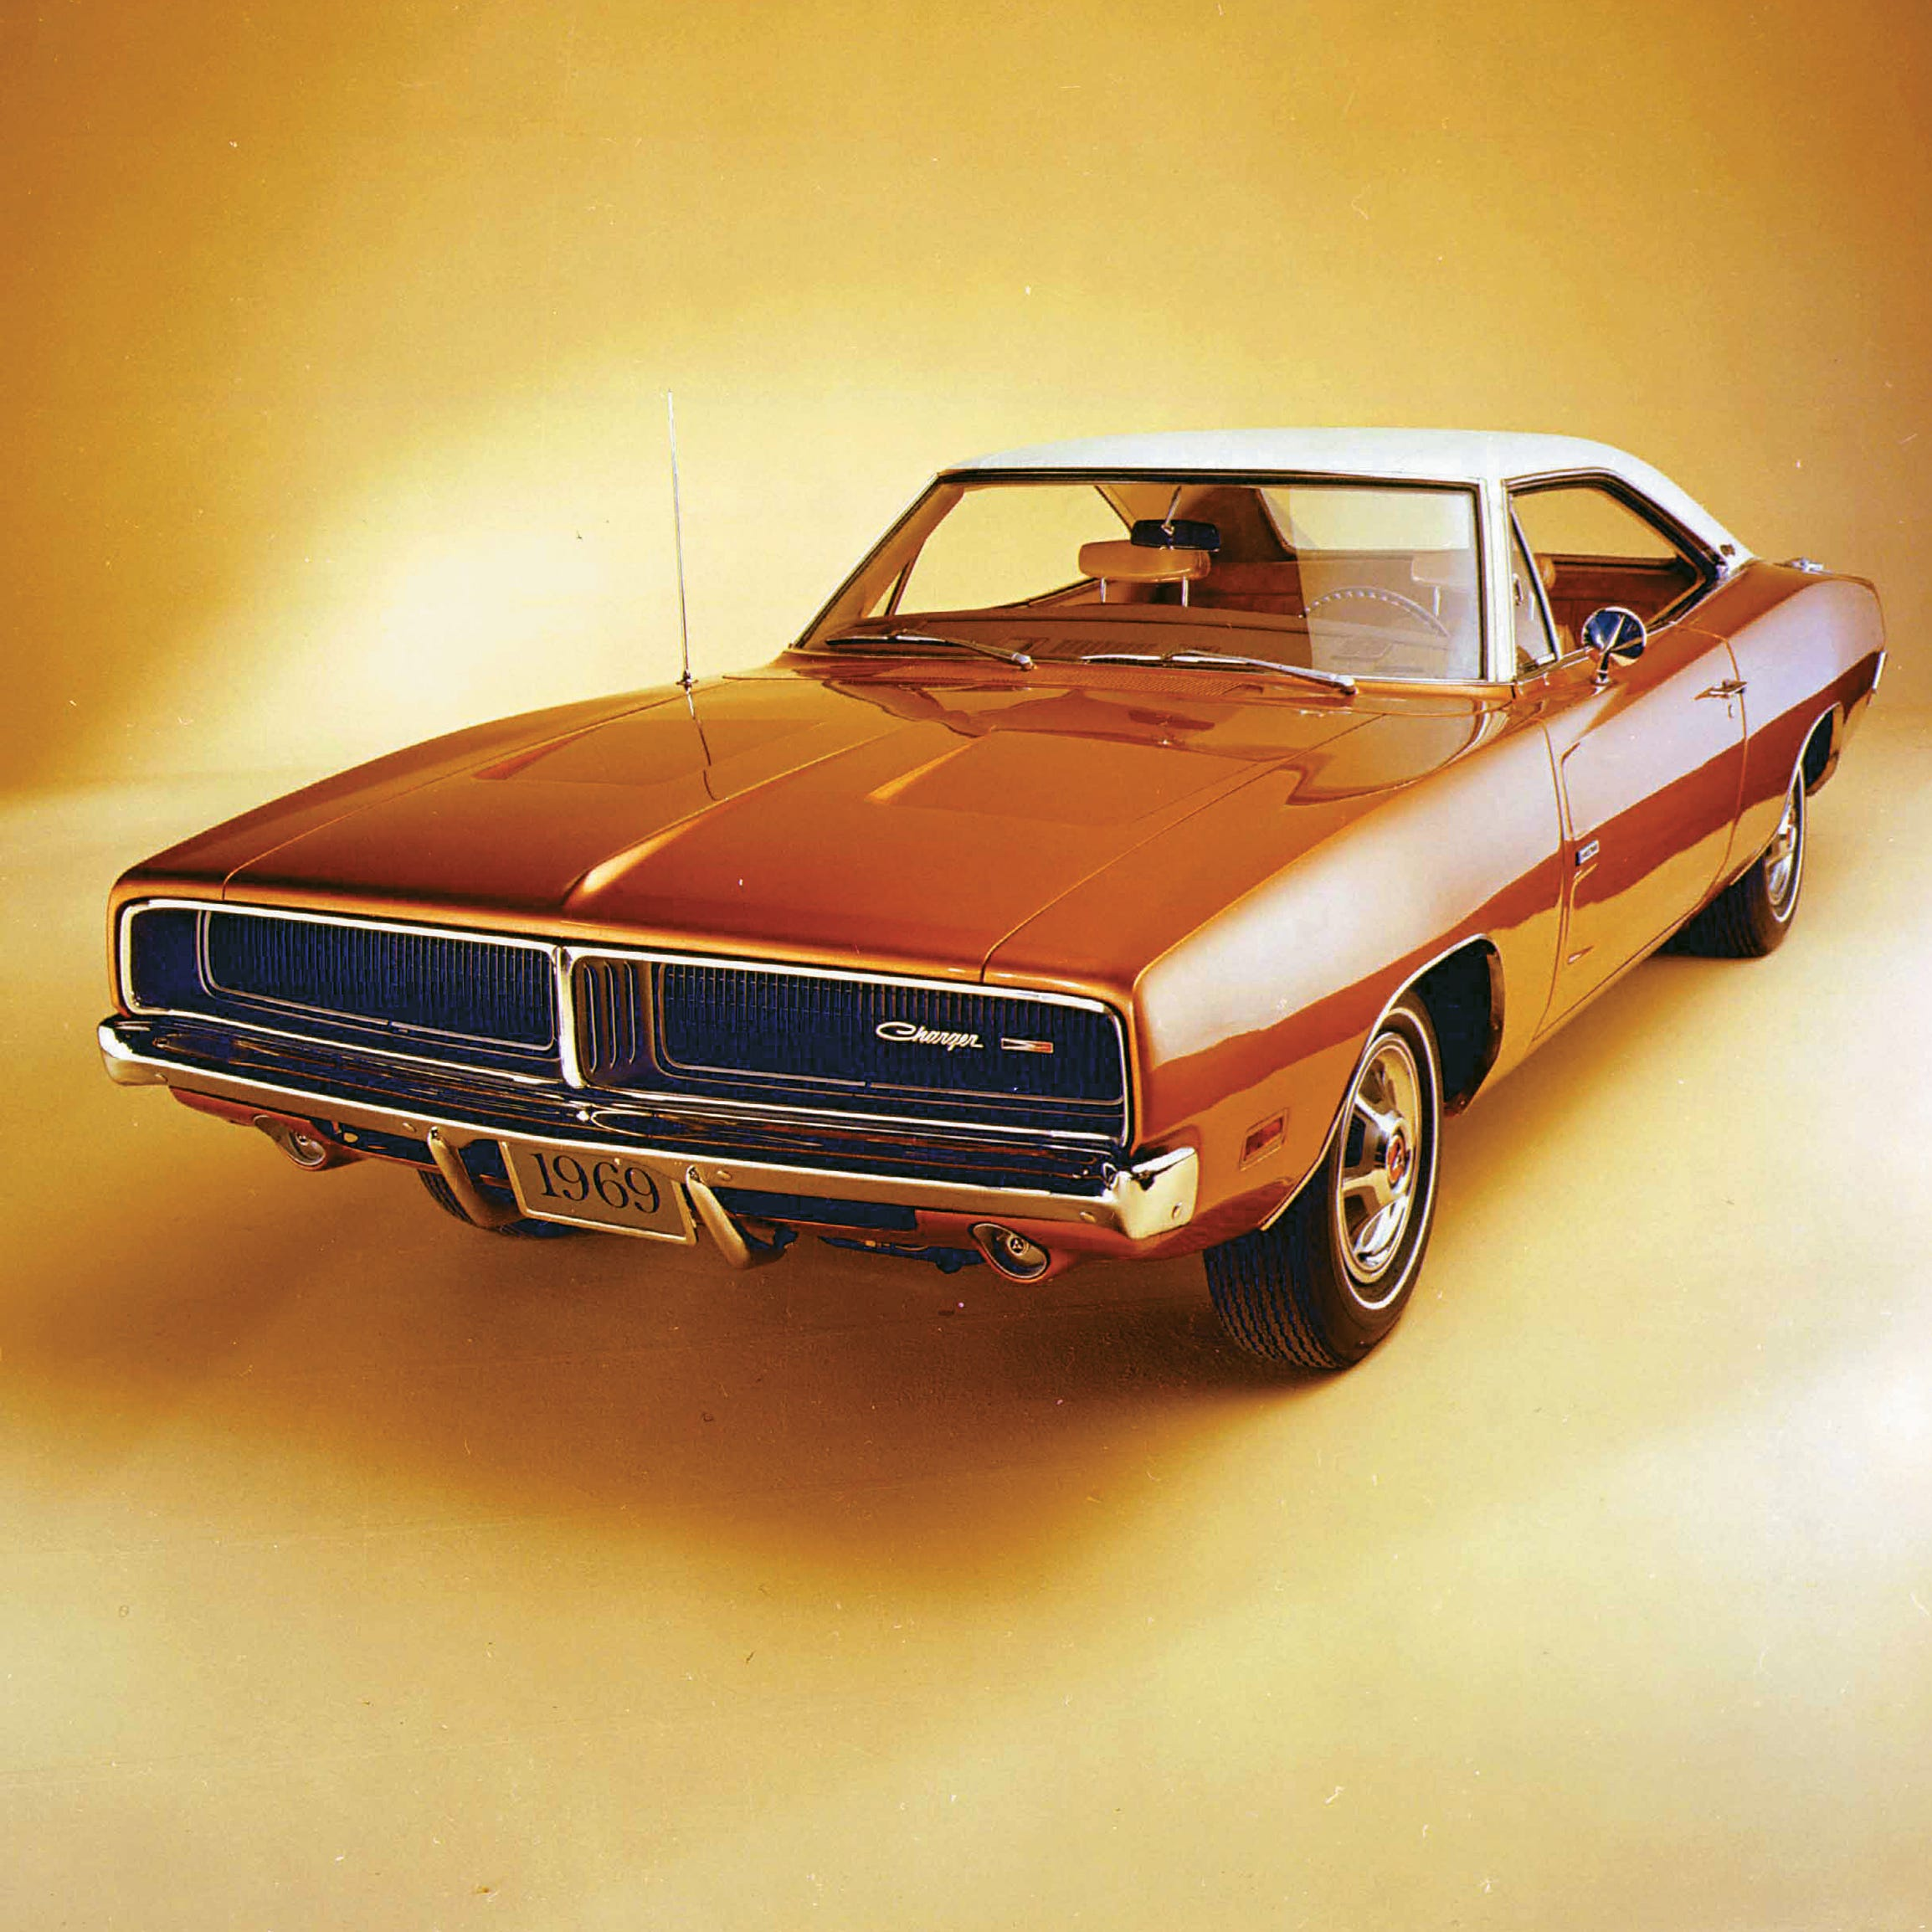 Online's most popular cruiser: '69 Dodge Charger